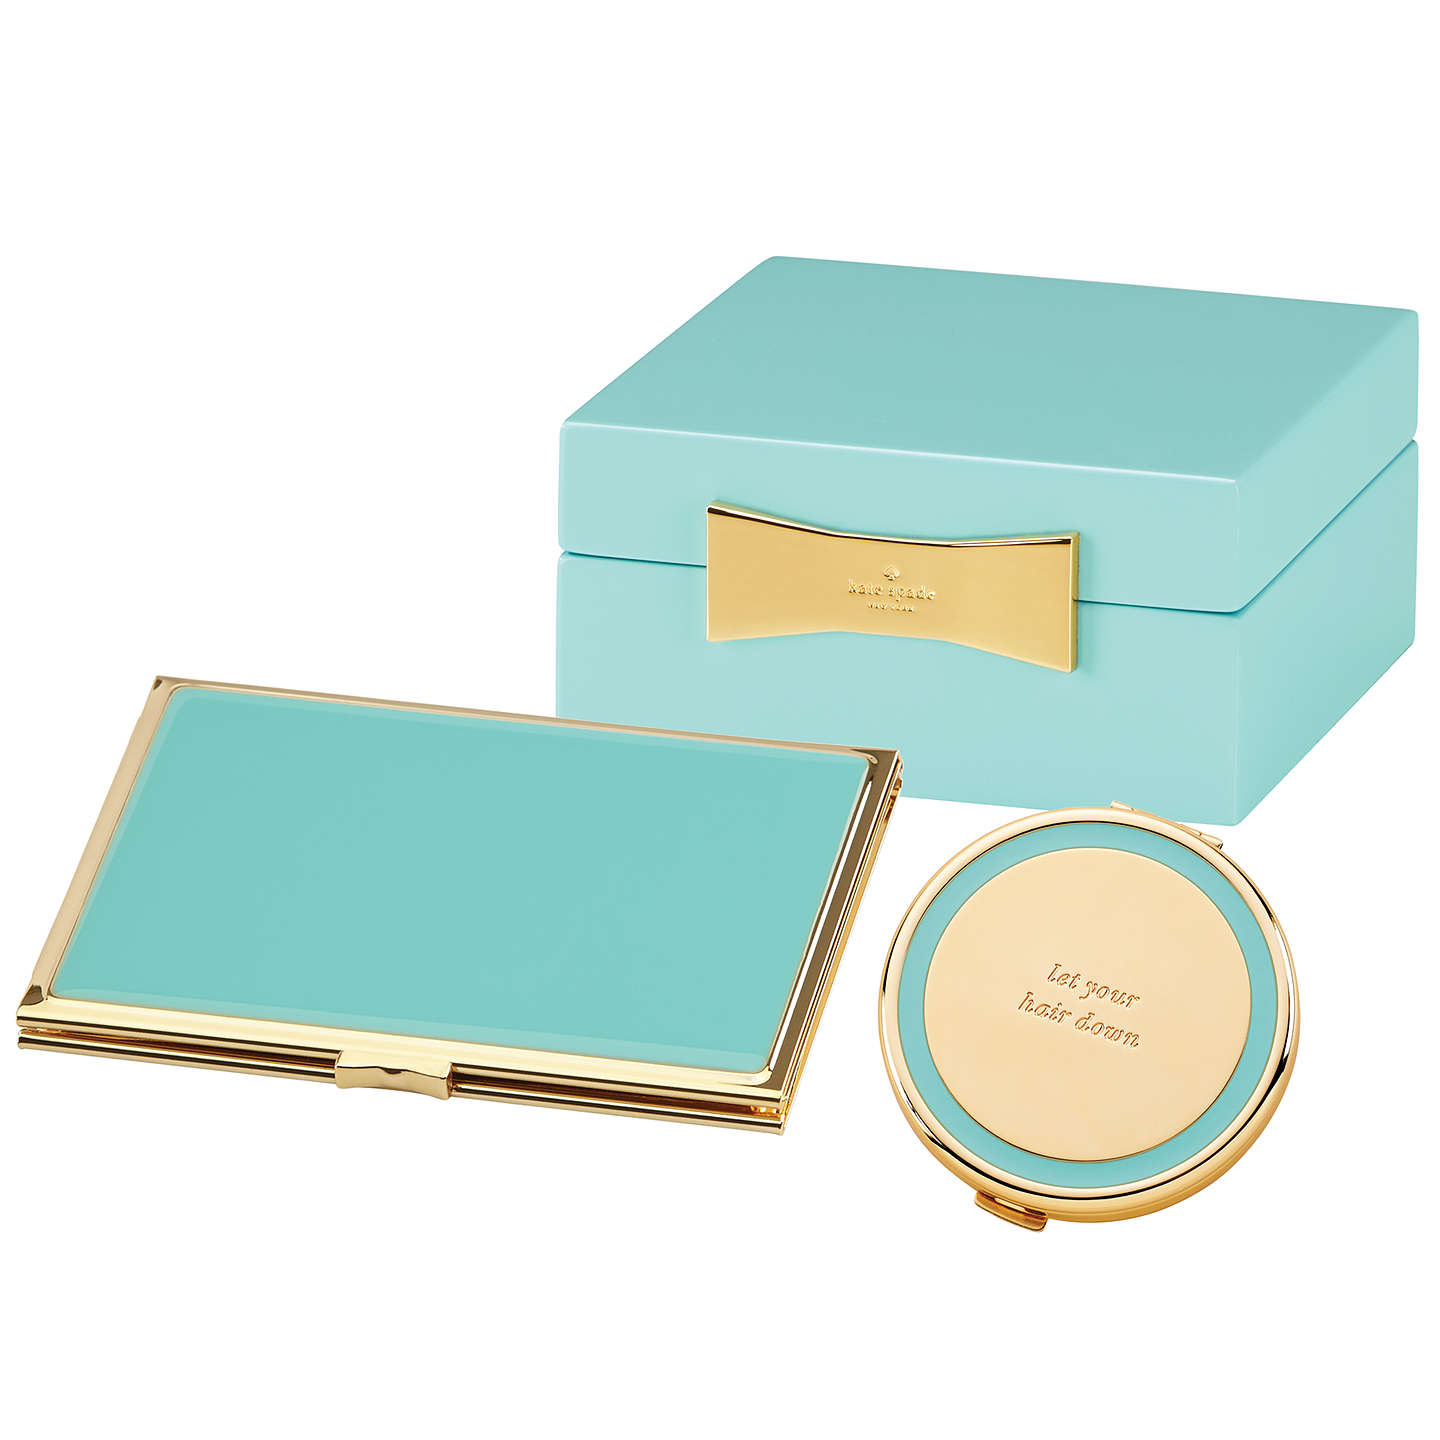 "Buykate spade new york Hinged Pocket Frame, 2.5 x 3.5"", Turquoise Online at johnlewis.com"